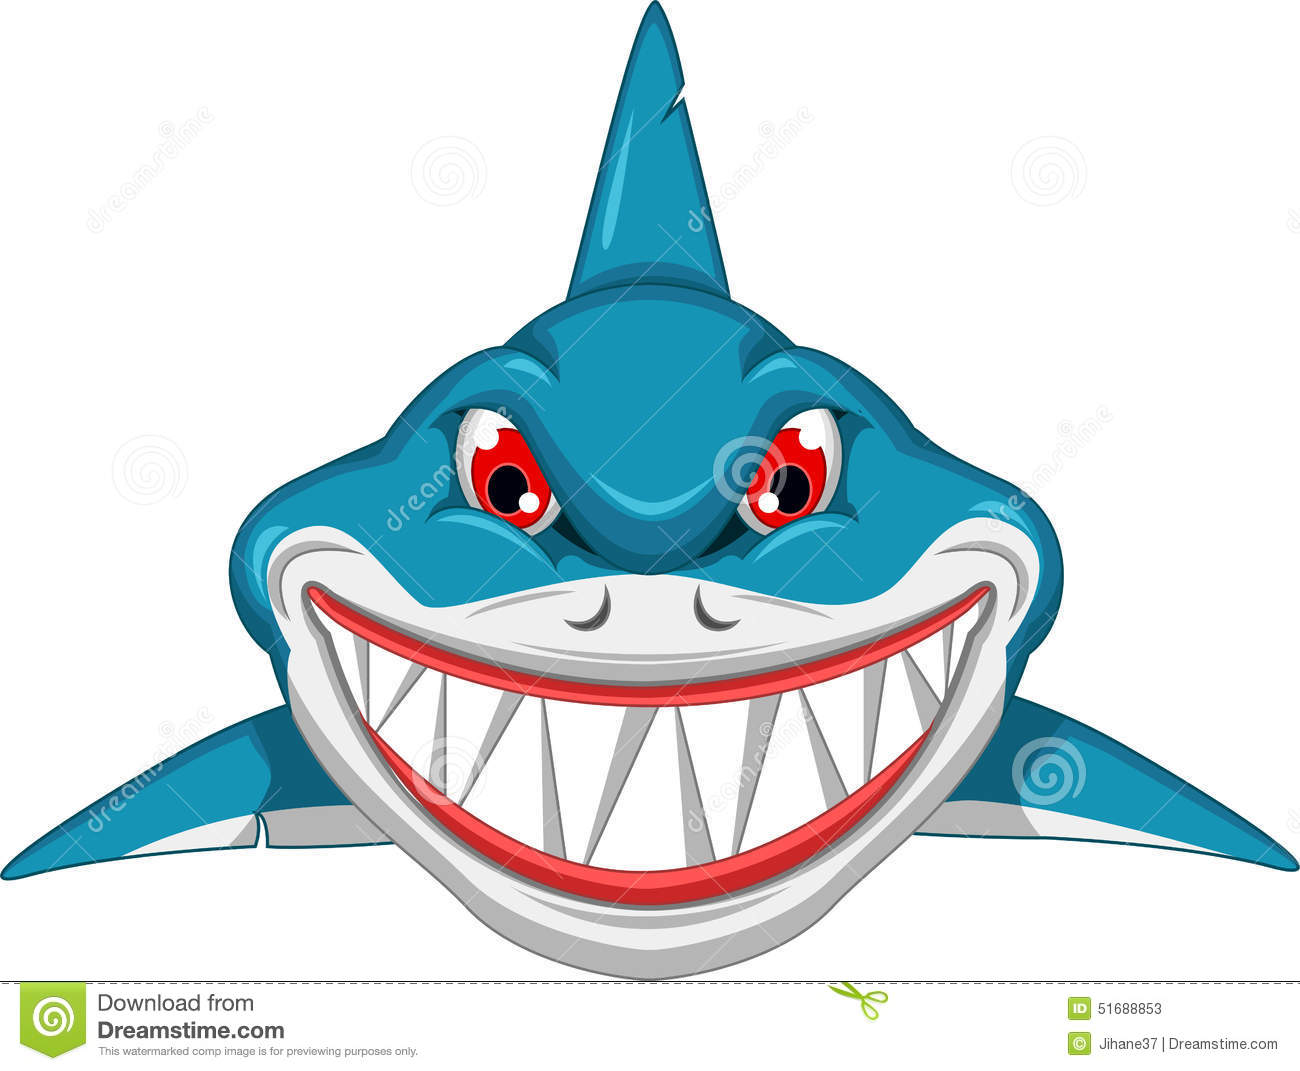 Angry shark clipart - photo#11